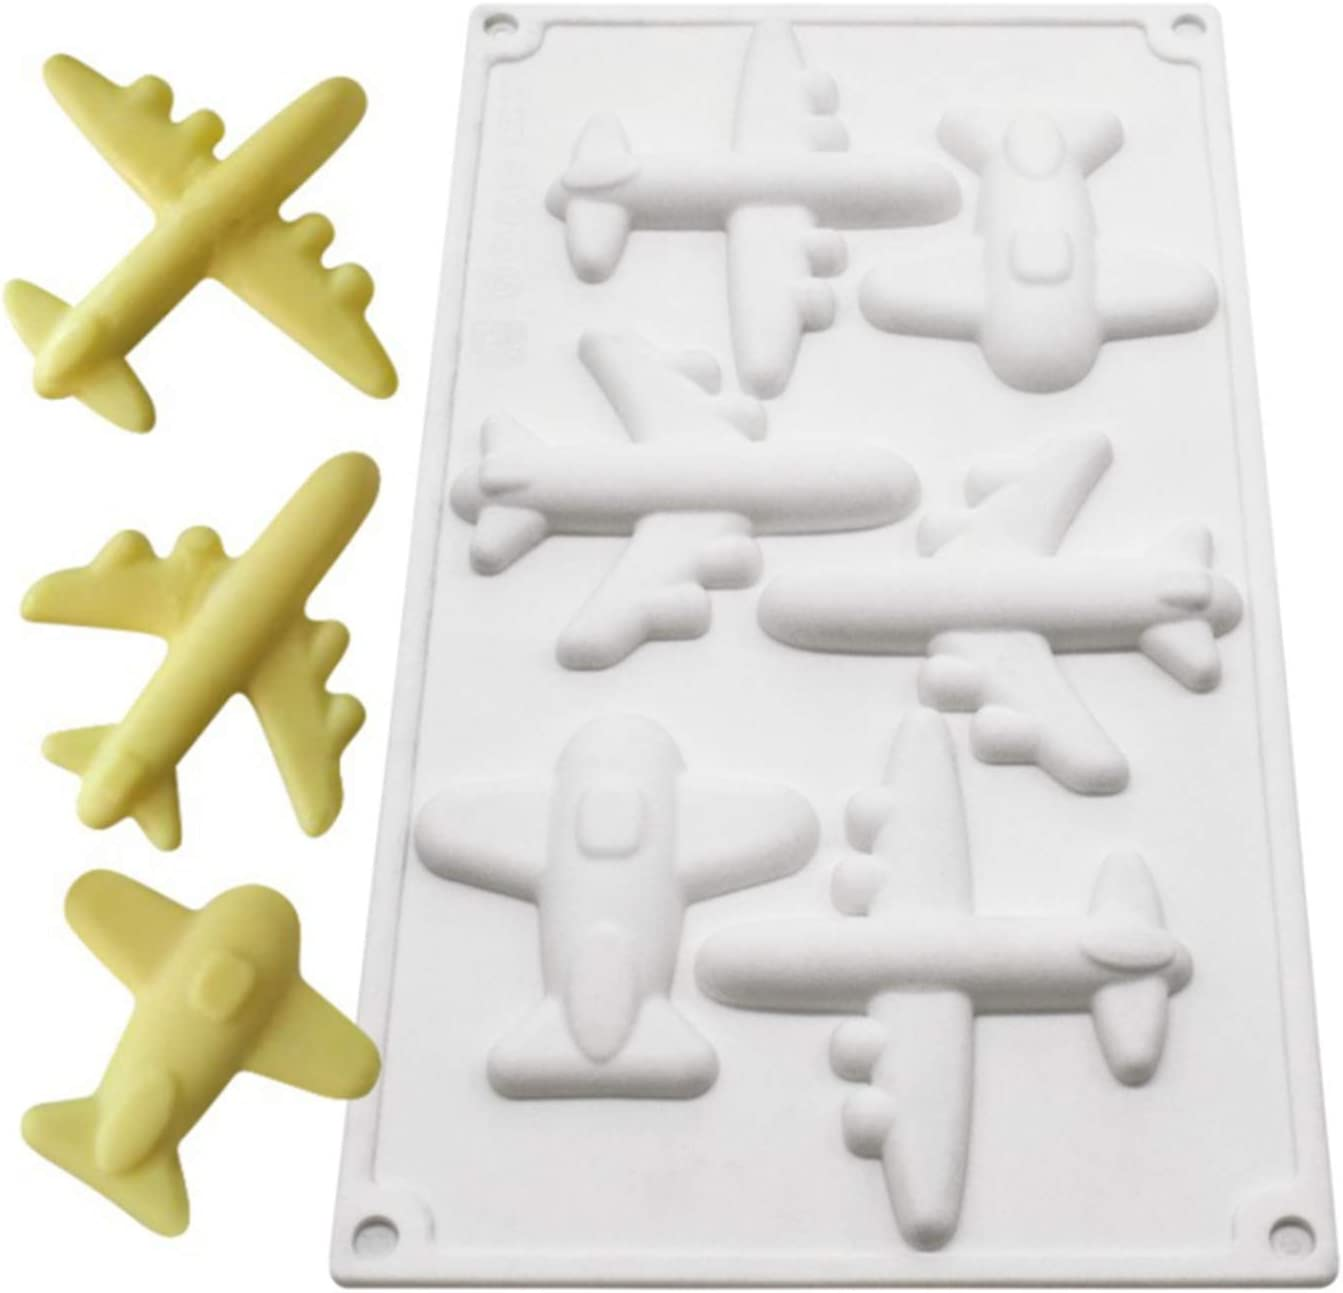 3D Airplane Fondant Silicone Molds - Reusable Non-stick Easy Release Chocolate Mousse Mold ,For Cupcake Decoration Fat Bomb Melt Mini Ice Cube Trays(6-Cavity)